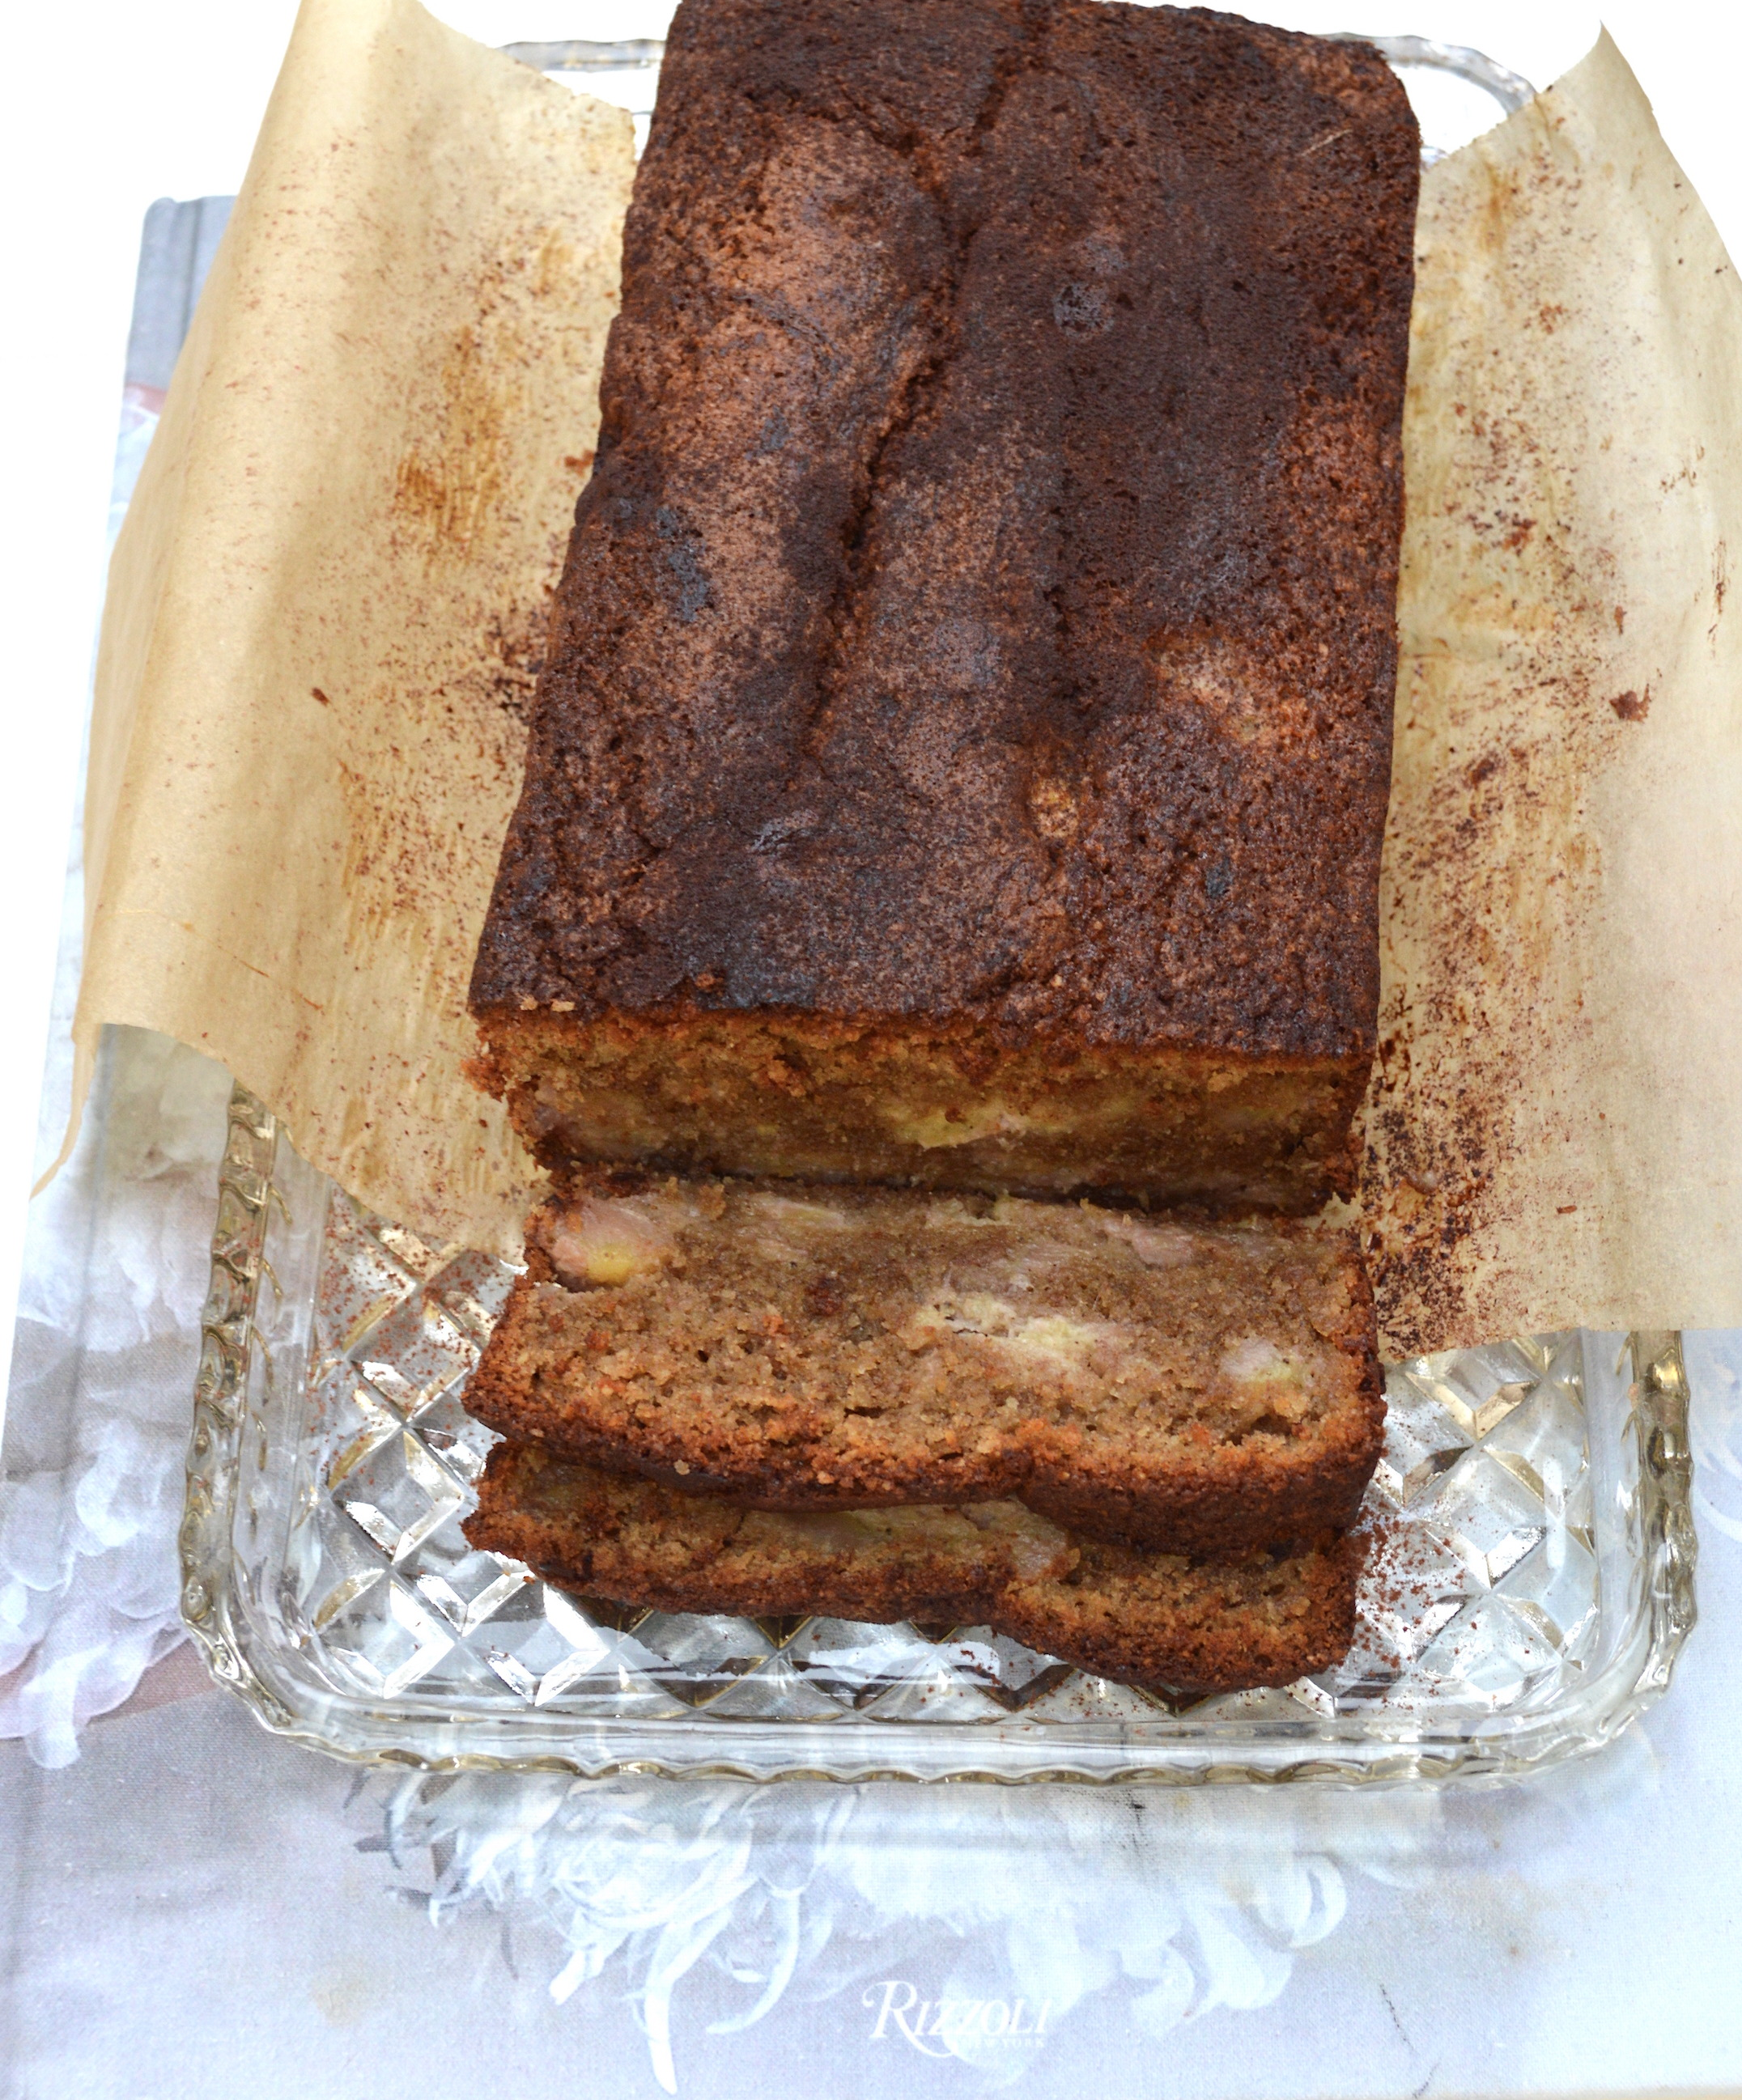 This is a classic banana bread but instead of normal wheat flour I have swapped it for ground almonds and spelt flour. You could swap the whole thing for ground almonds if you wanted to make it gluten-free and I sometimes like throwing in 50g almond flakes, walnuts or roughly chopped dark chocolate. However, I have been cooking a client and he prefers it a little more straight forward and its still pretty addictive with the recipe below. It is the perfect loaf to bake over the weekend.  Ingredients:  110g unsalted butter, soft and cut into cubes  225g muscovado sugar  100g ground almonds  90g spelt flour  small pinch of sea salt  1/2 (level) tsp baking powder  1/2 (level) tsp bicarbonate of soda  2 (level) tsp cinnamon powder  350g ripe bananas (roughly 3-4)  85g buttermilk / milk with a few drops of lemon juice / plain yoghurt  1 tsp vanilla extract  2 medium free-range eggs, lightly beaten  Preheat the oven to 170 degrees on the fan setting and grease and line a standard loaf tin (21cm long, 11cm wide and 7cm high) with baking parchment.  In a large mixing bowl add the butter and sugar and beat together with an electric hand whisk until light and fluffy. This will take about 5 minutes. Then beat in a little of the beaten eggs followed by a little of the dry ingredients (ground almonds, spelt flour, sea salt, baking powder, bicarbonate of soda, cinnamon powder mixed together). Make sure everything is mixed in well before adding in more eggs and flour. Continue until all is incorporated and you have a light brown batter.  In a separate bowl add the bananas and buttermilk and use a fork to roughly mash everything together. It is supposed to be a little lumpy and textured and then use a spatula to carefully fold this into the other batter. Do not over work and just take a few seconds to combine the two mixtures. Scrape into the prepared tin and into the oven for 40-45 minutes. Check at this point to see if the top is golden brown and then remove from the oven and cove